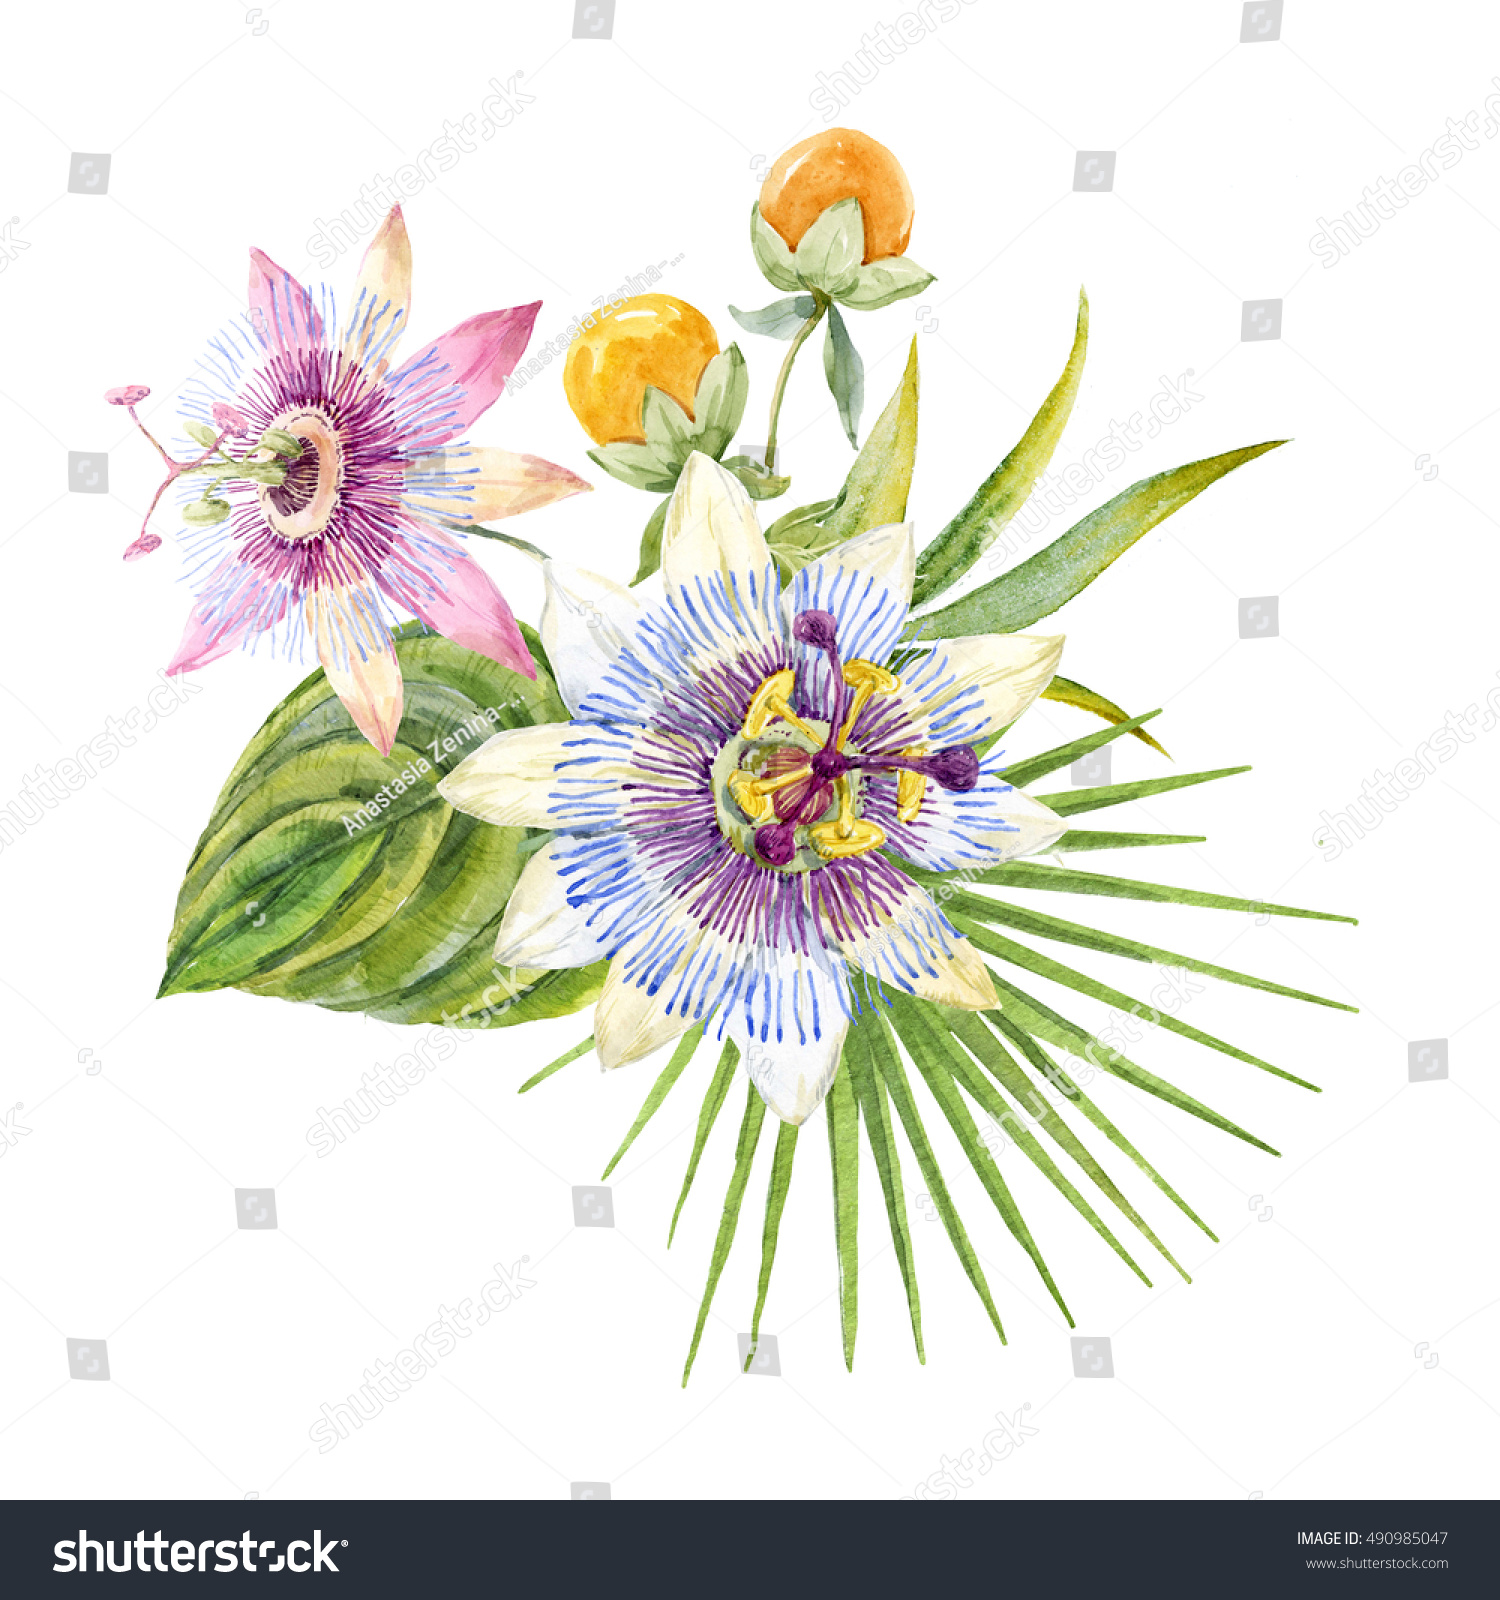 Watercolor Tropical Flower Bouquet Flower Passionflower Stock